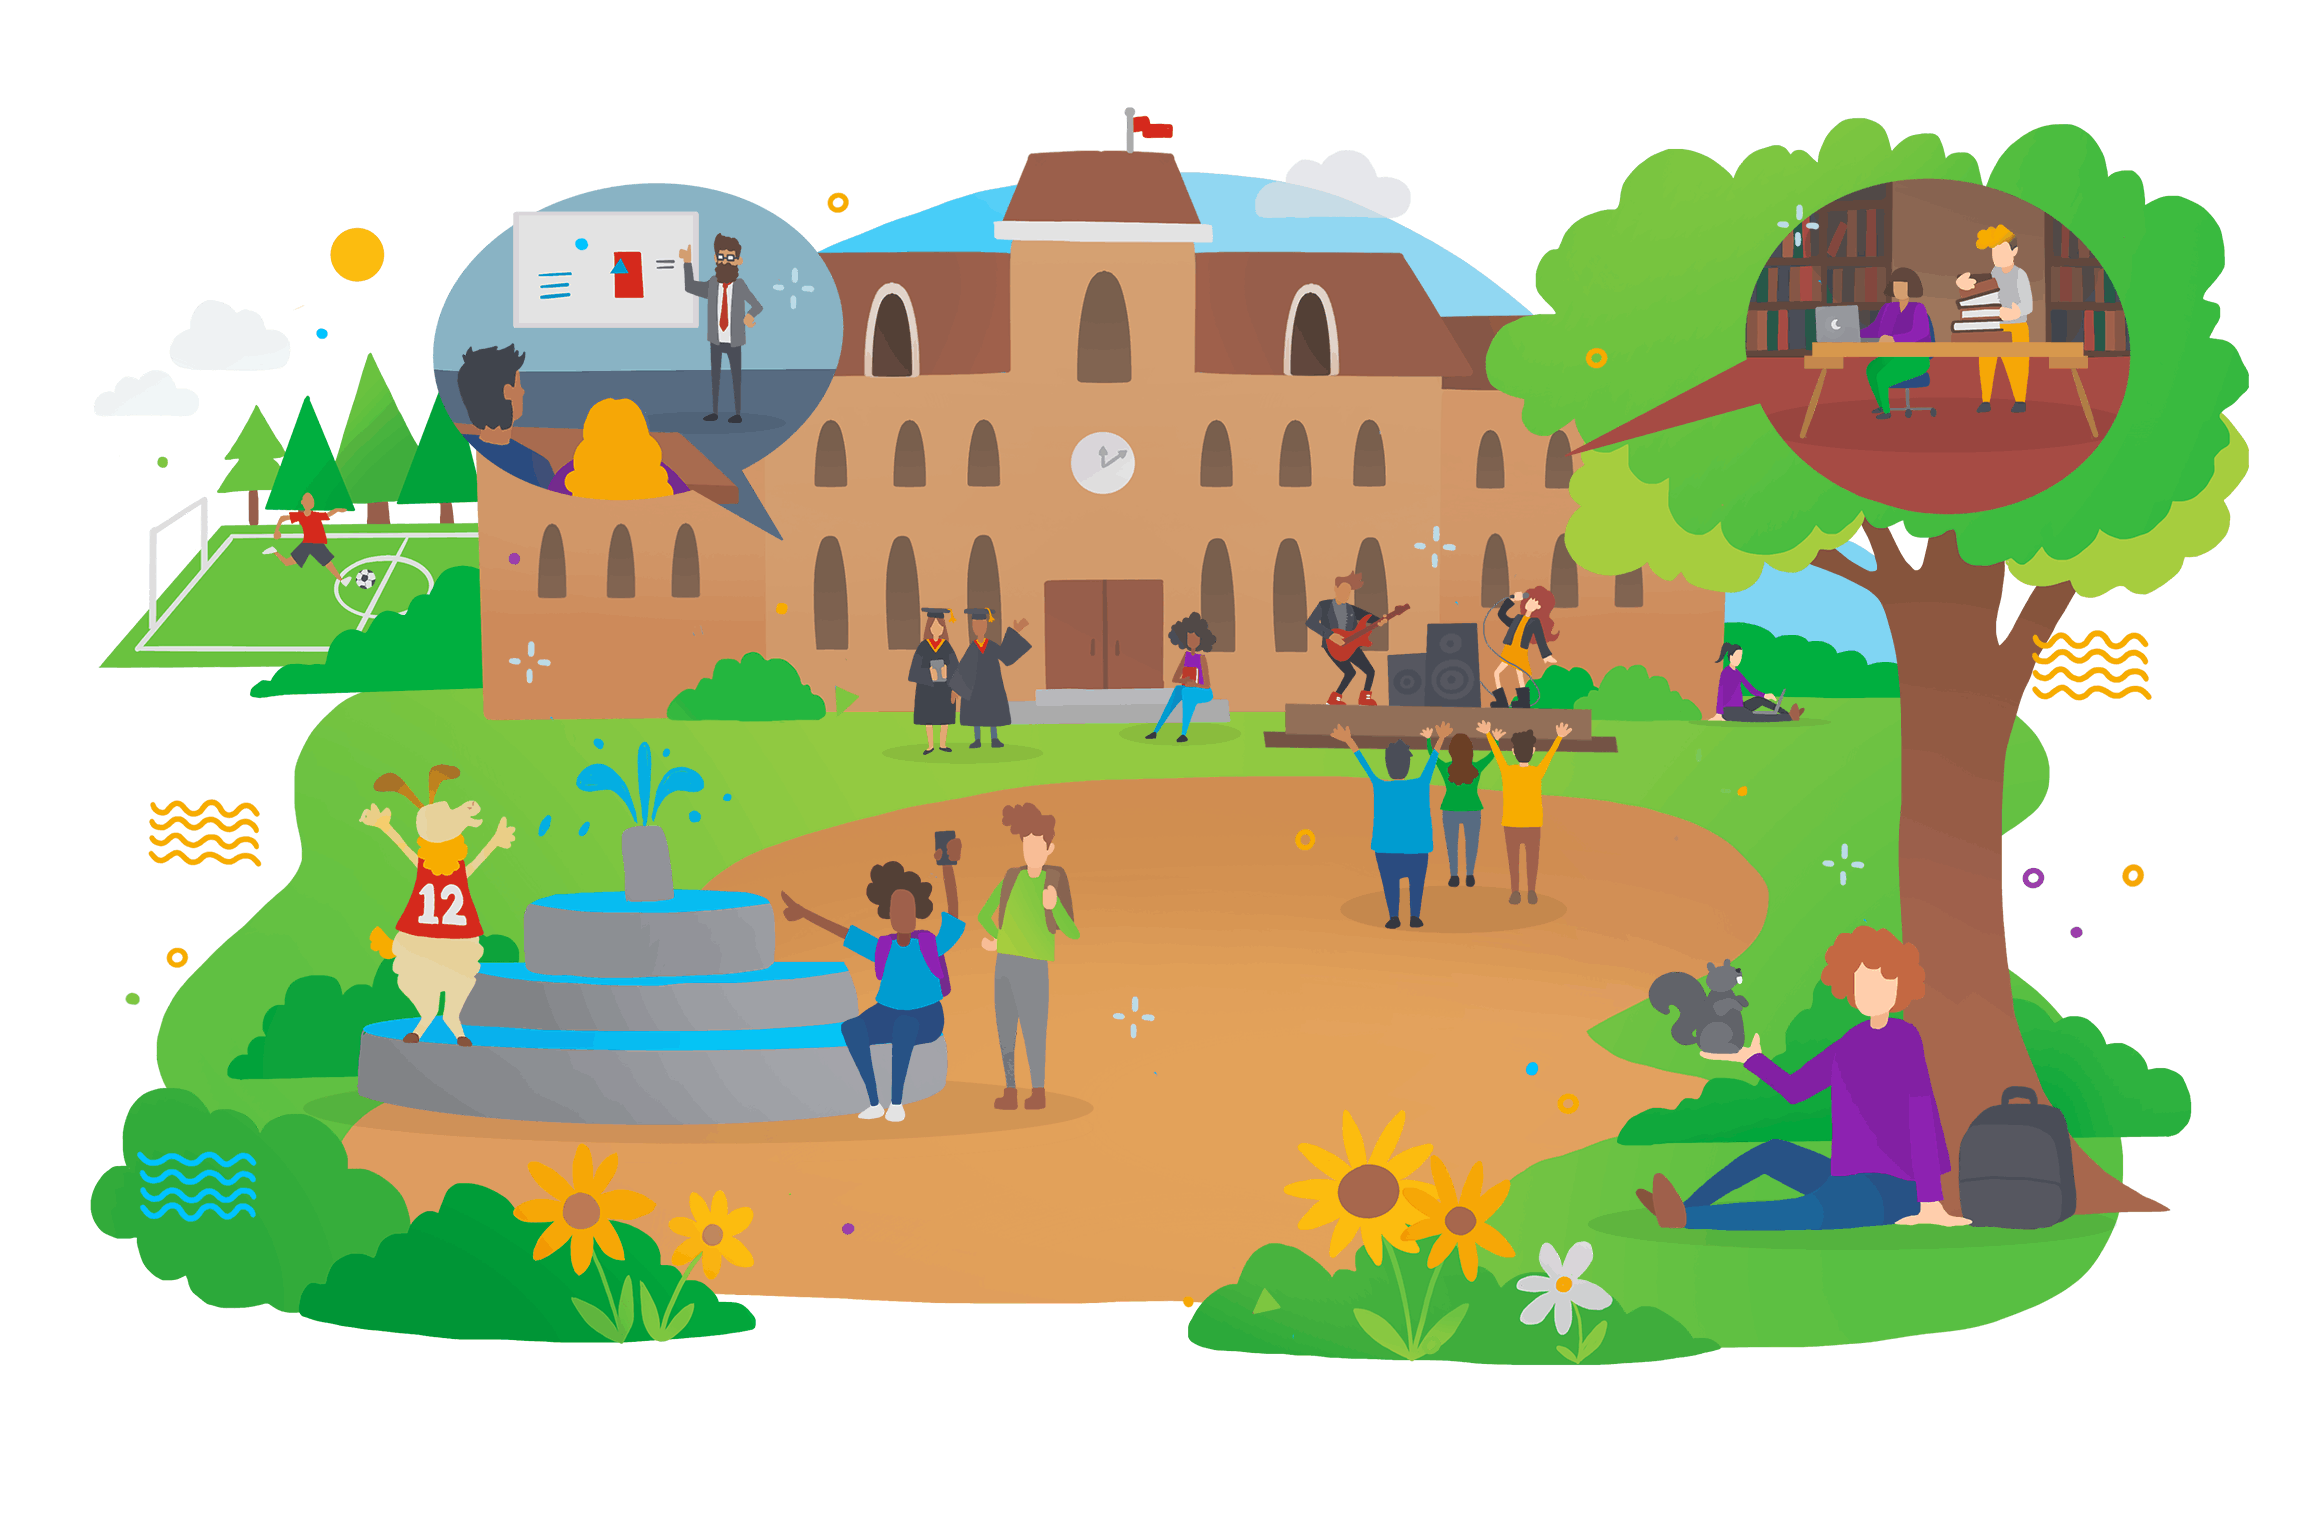 A colourful cartoon illustration of a university campus full of people and lush greenery.